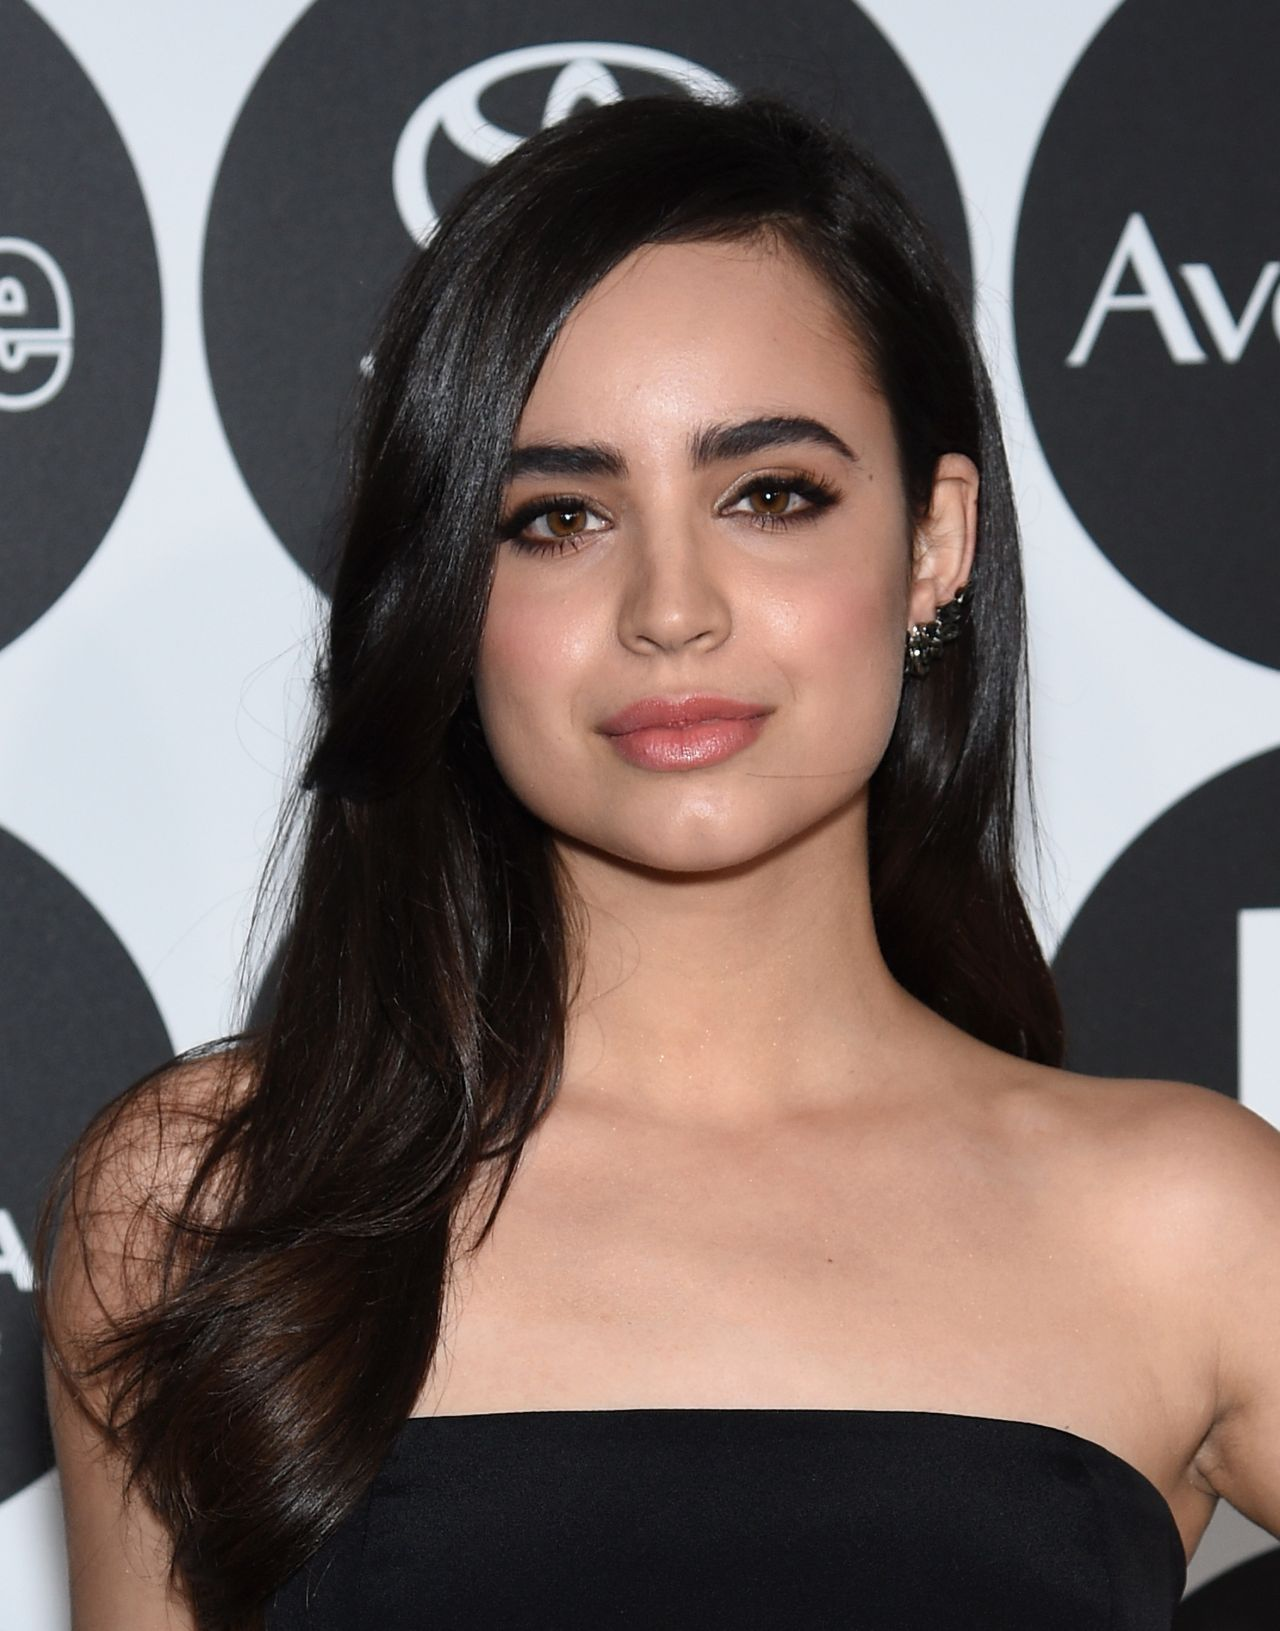 sofia carson – why don't isofia carson back to beautiful, sofia carson love is the name, sofia carson back to beautiful скачать, sofia carson back to beautiful перевод, sofia carson песни, sofia carson instagram, sofia carson why don't i скачать, sofia carson alan walker, sofia carson why don't i перевод, sofia carson биография, sofia carson back to beautiful текст, sofia carson скачать, sofia carson рост, sofia carson vk, sofia carson – why don't i, sofia carson back to beautiful lyrics, sofia carson stuck on the outside скачать, sofia carson beautiful, sofia carson фильмы, sofia carson stuck on the outside